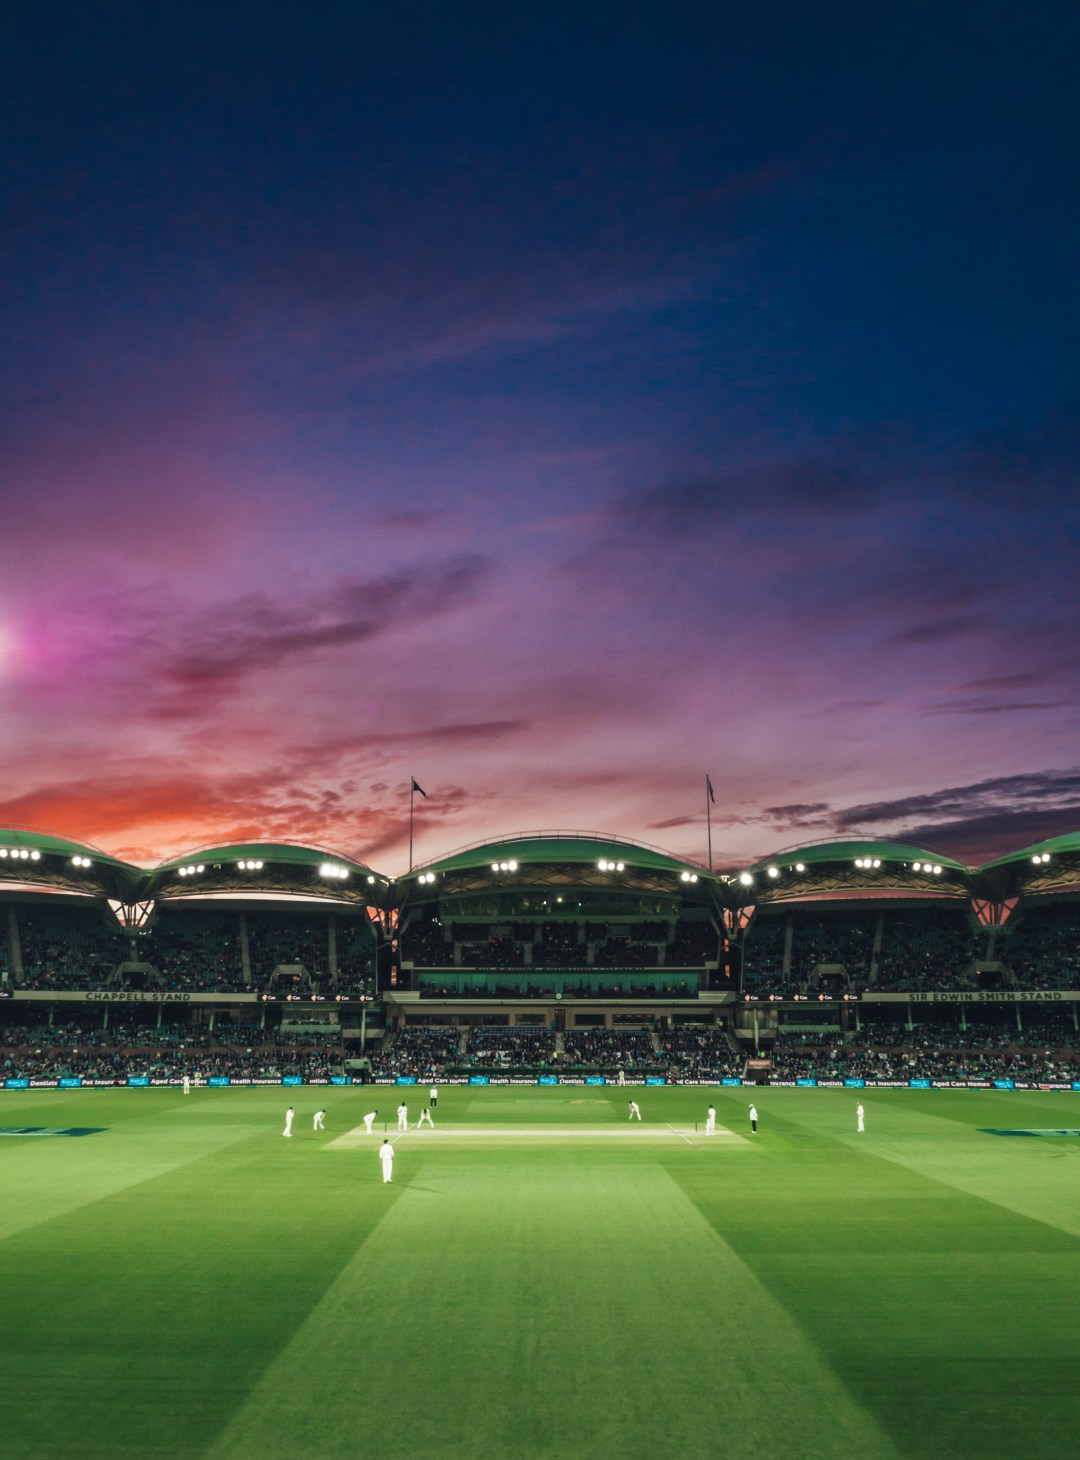 100+ Cricket Pictures [HD] | Download Free Images & Stock Photos on Unsplash